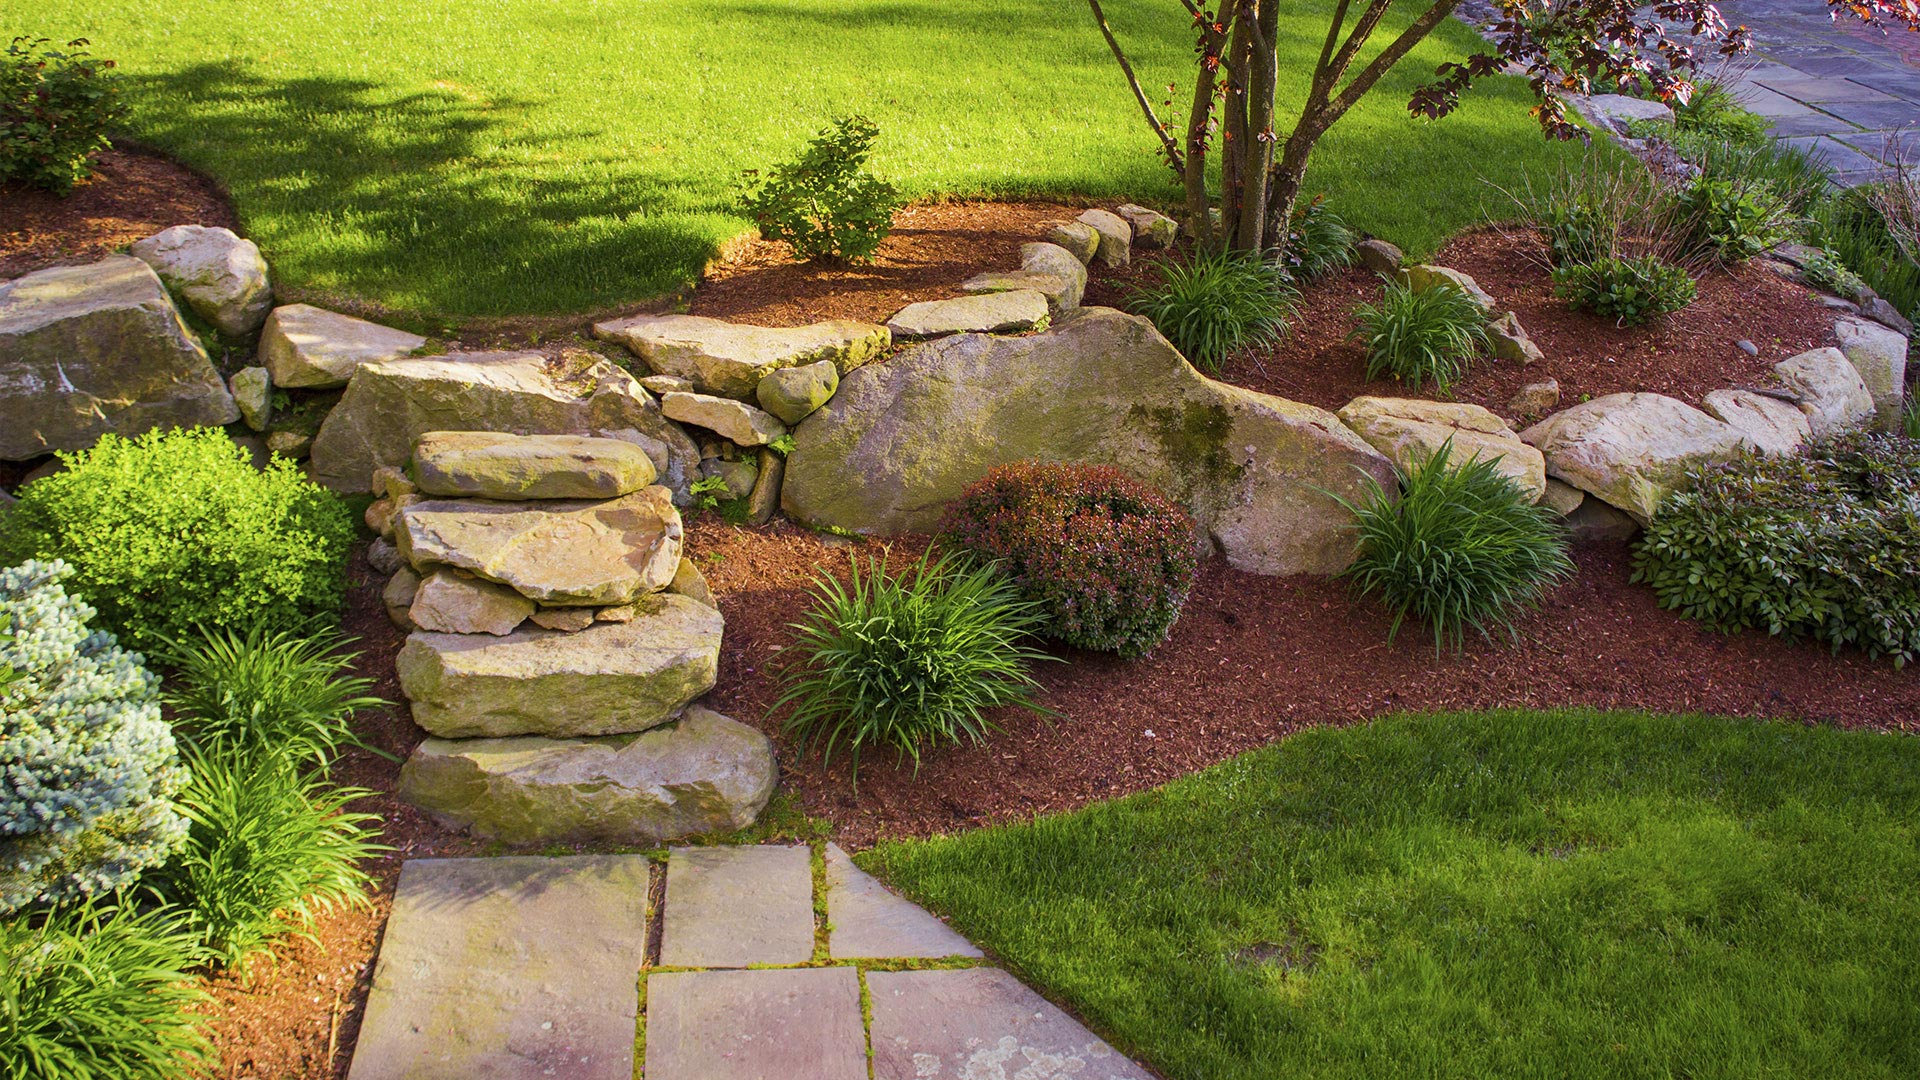 Costa Masonry Landscape Landscaping, Lawn Care and Hardscaping slide 3